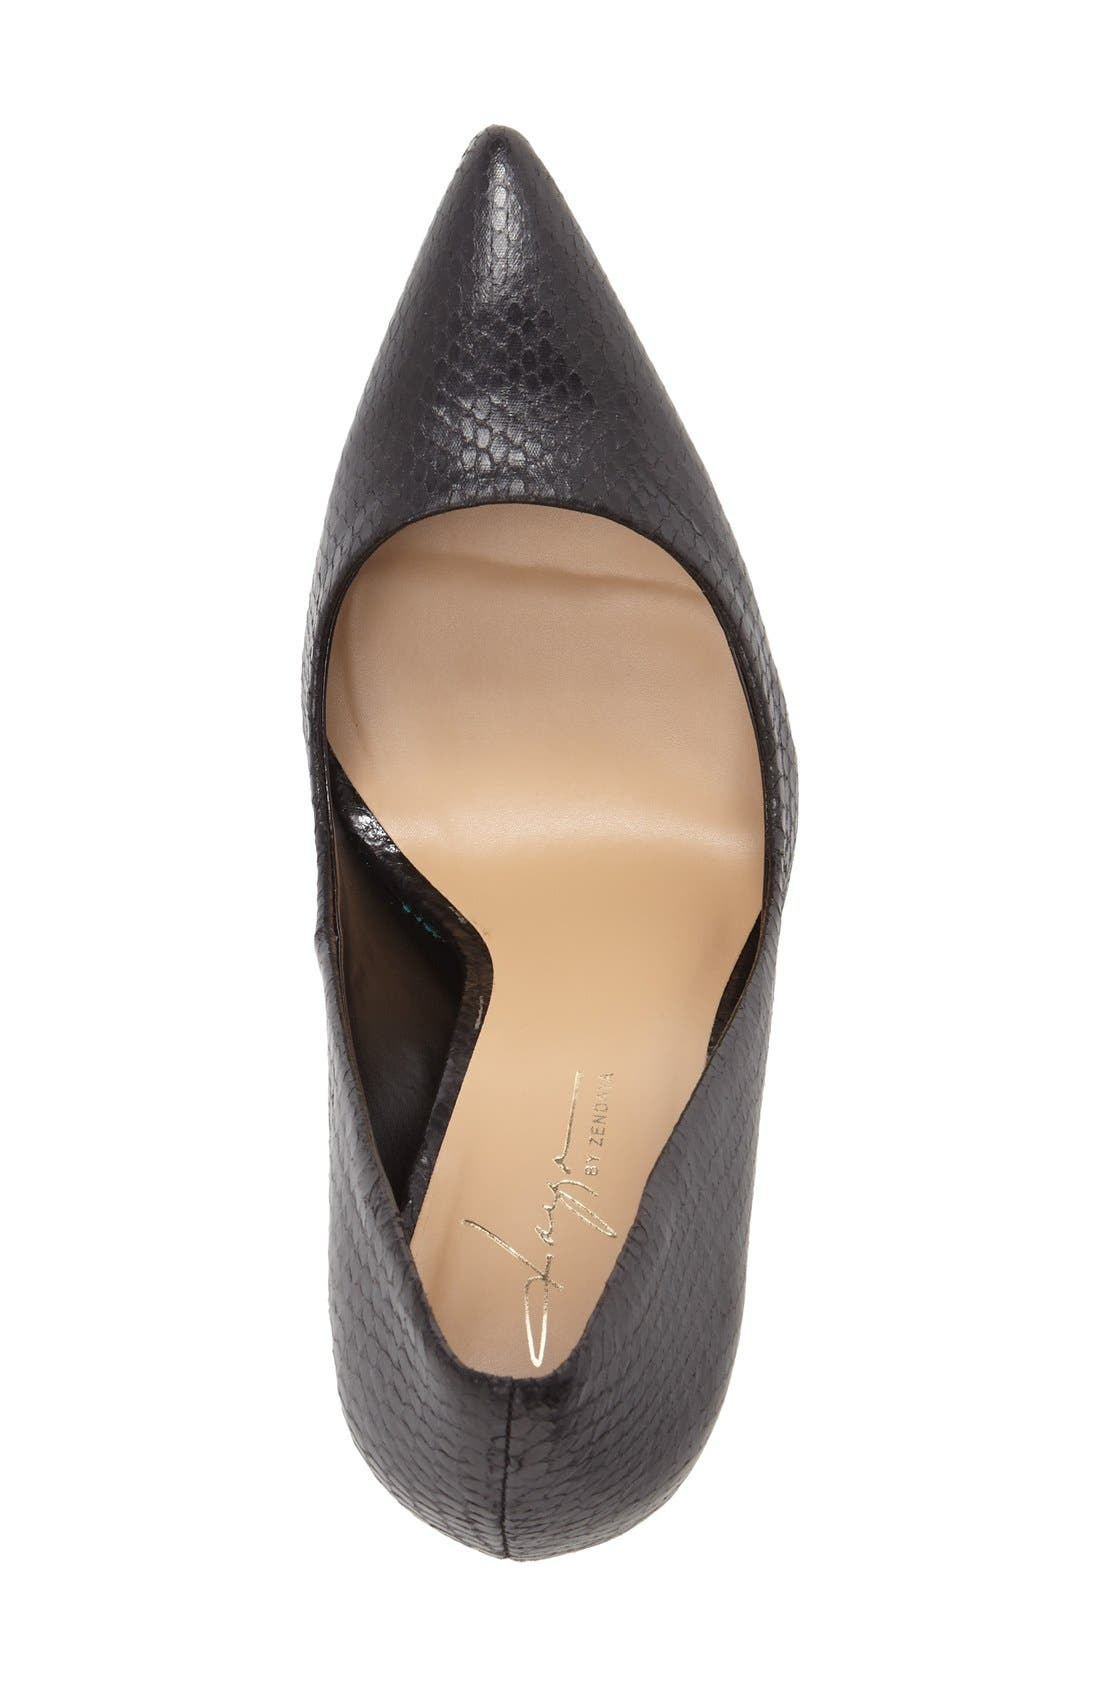 Alternate Image 3  - Daya by Zendaya 'Atmore' Pump (Women)